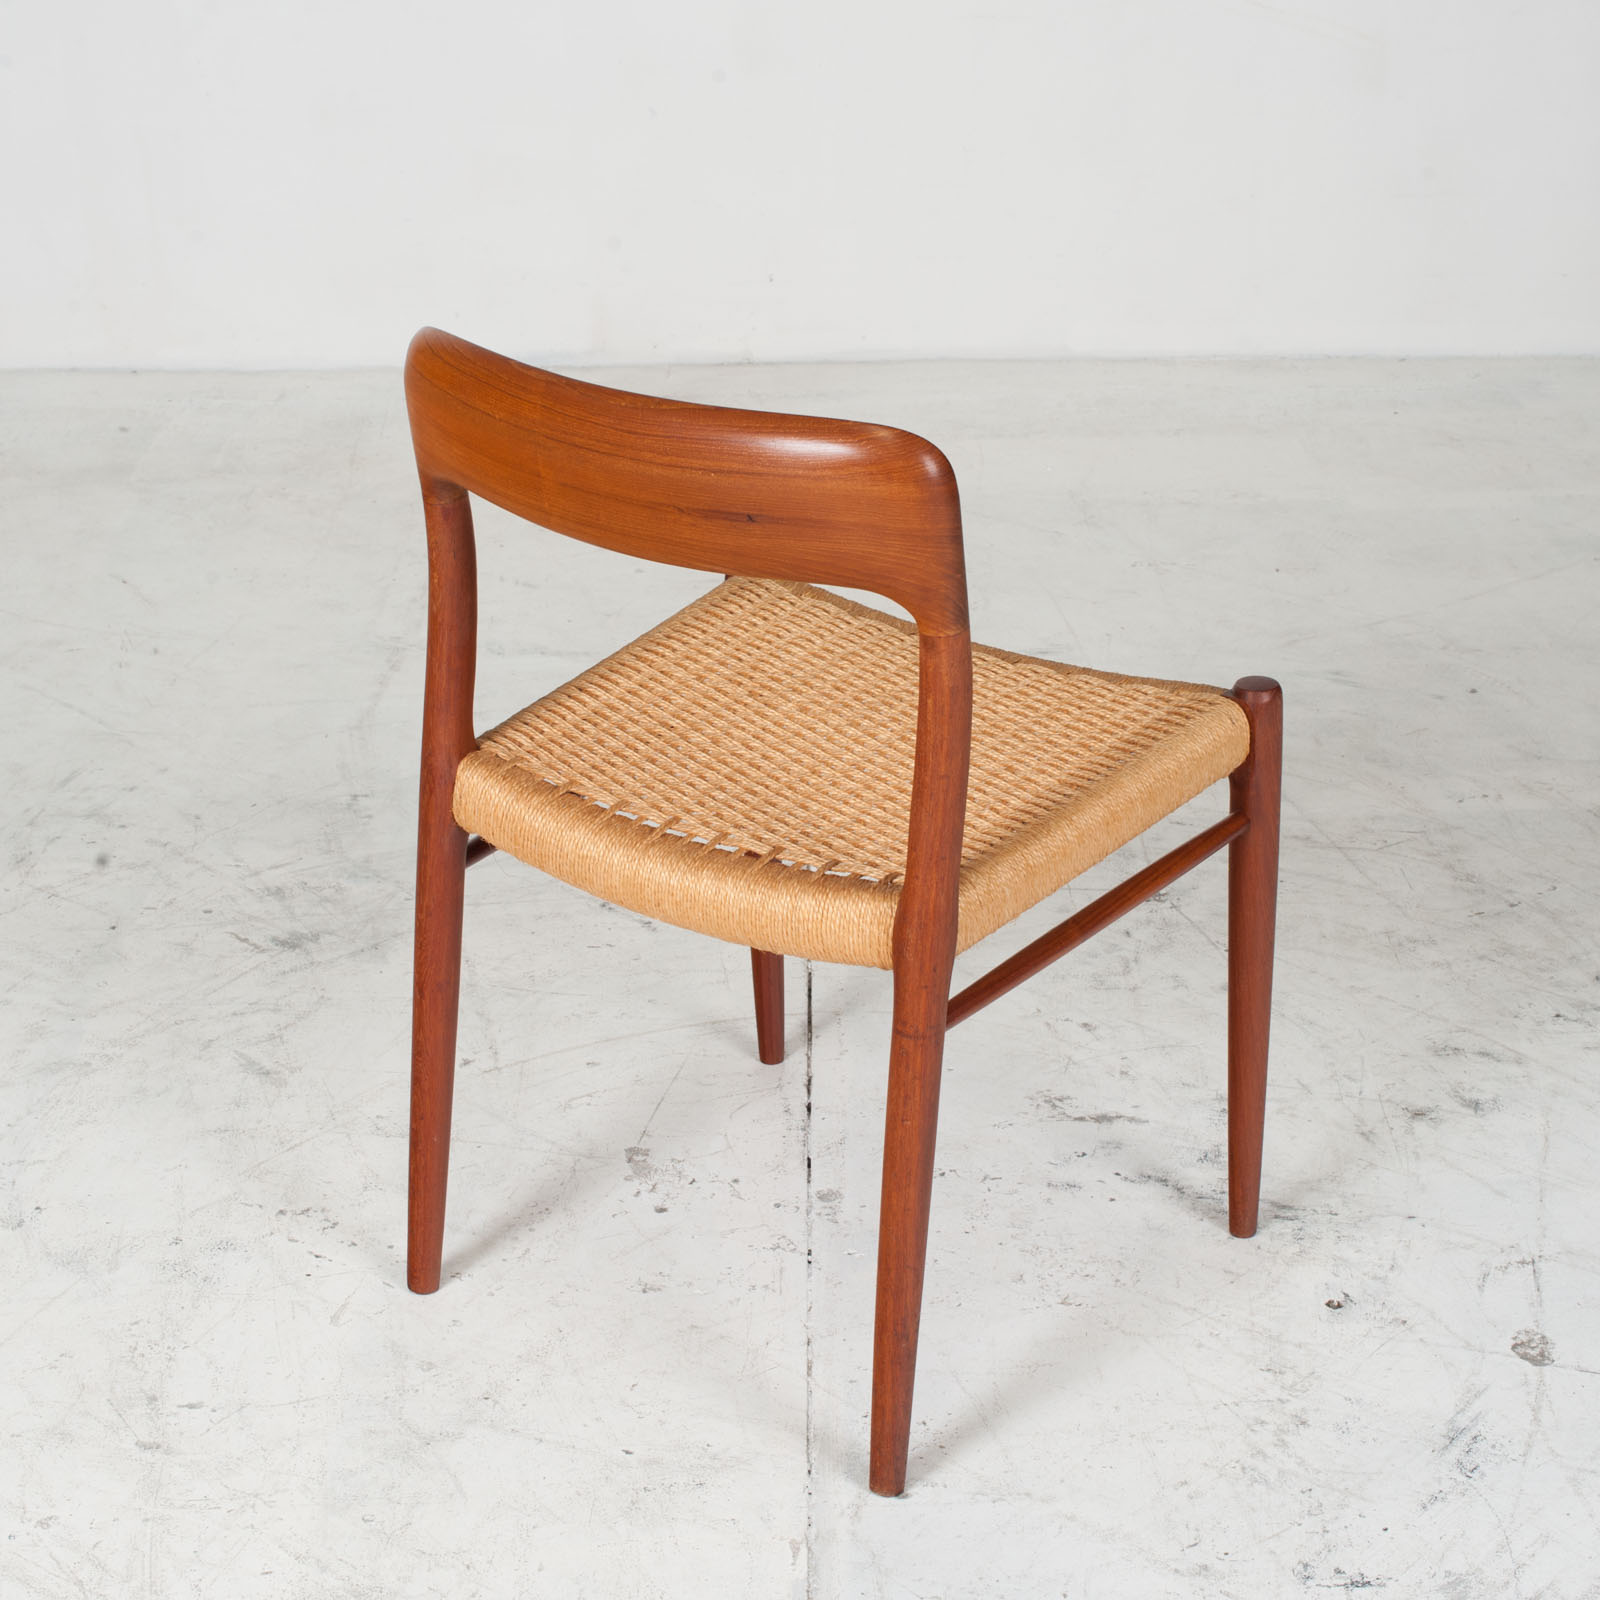 Set Of 6 Model 75 Dining Chairs By J. L. Moller In Teak And Cord 1960s Denmark 07